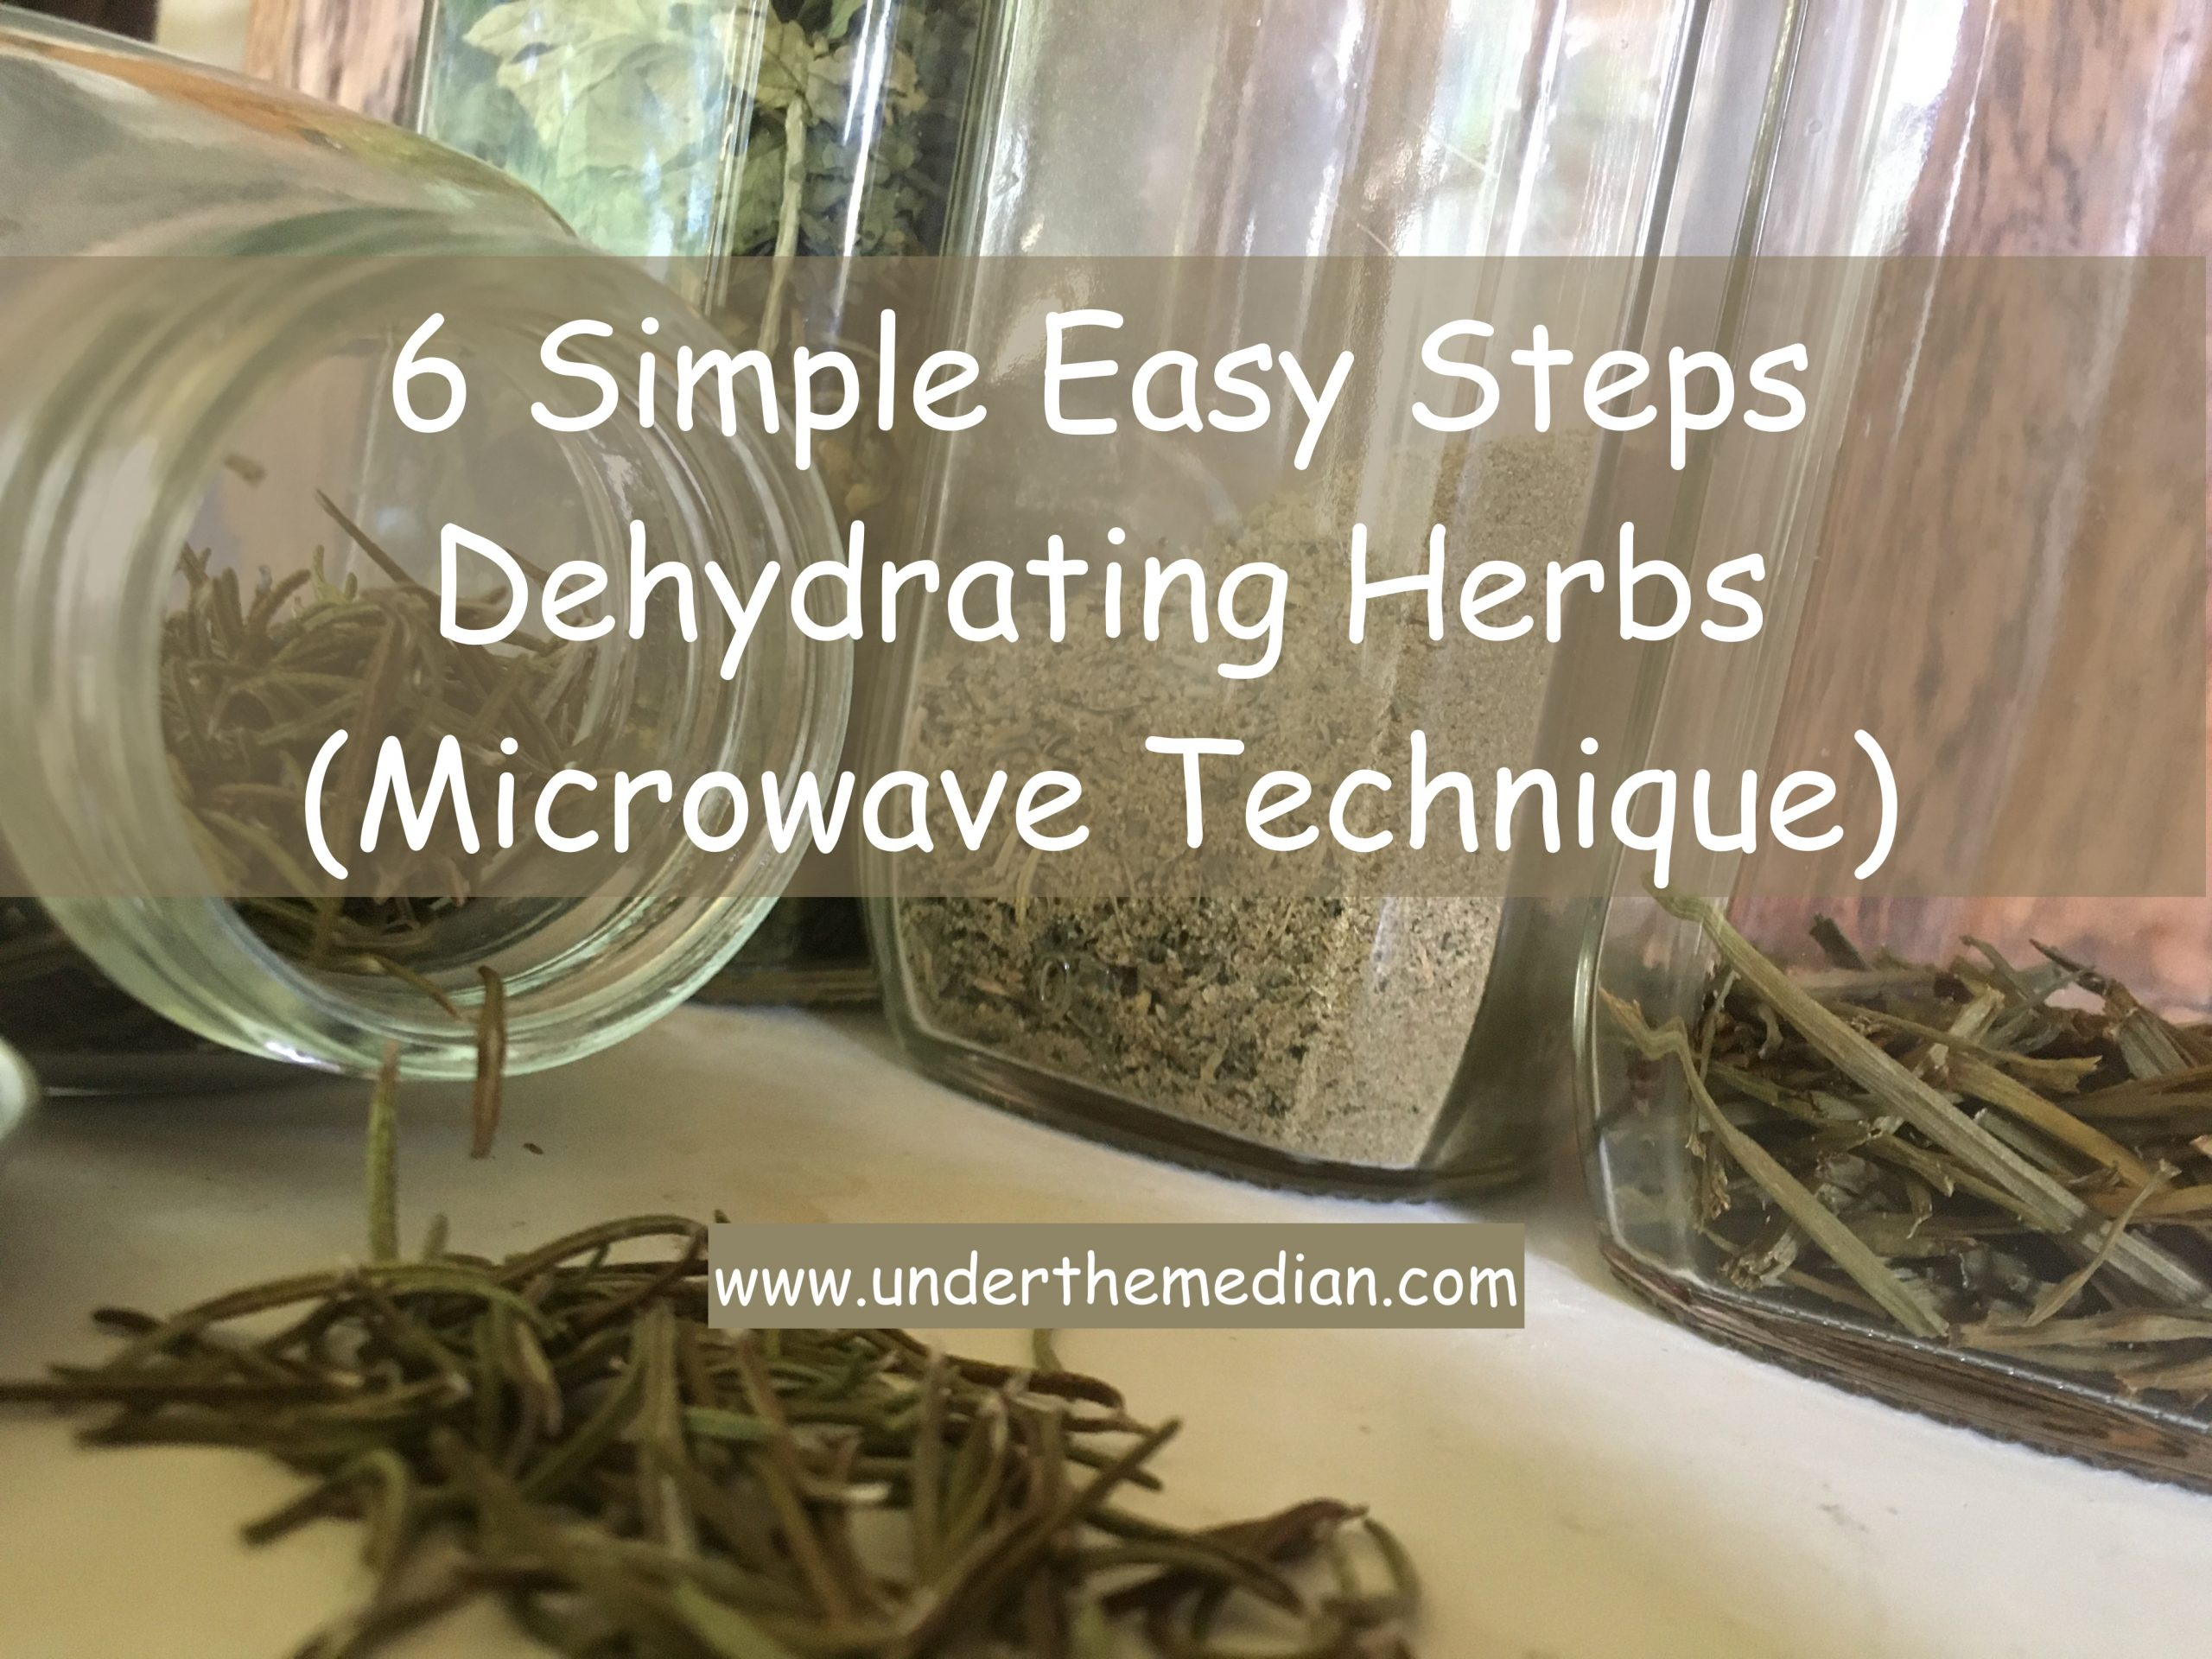 6 Simple, Easy Steps to Dehydrating Herbs (Microwave Technique)